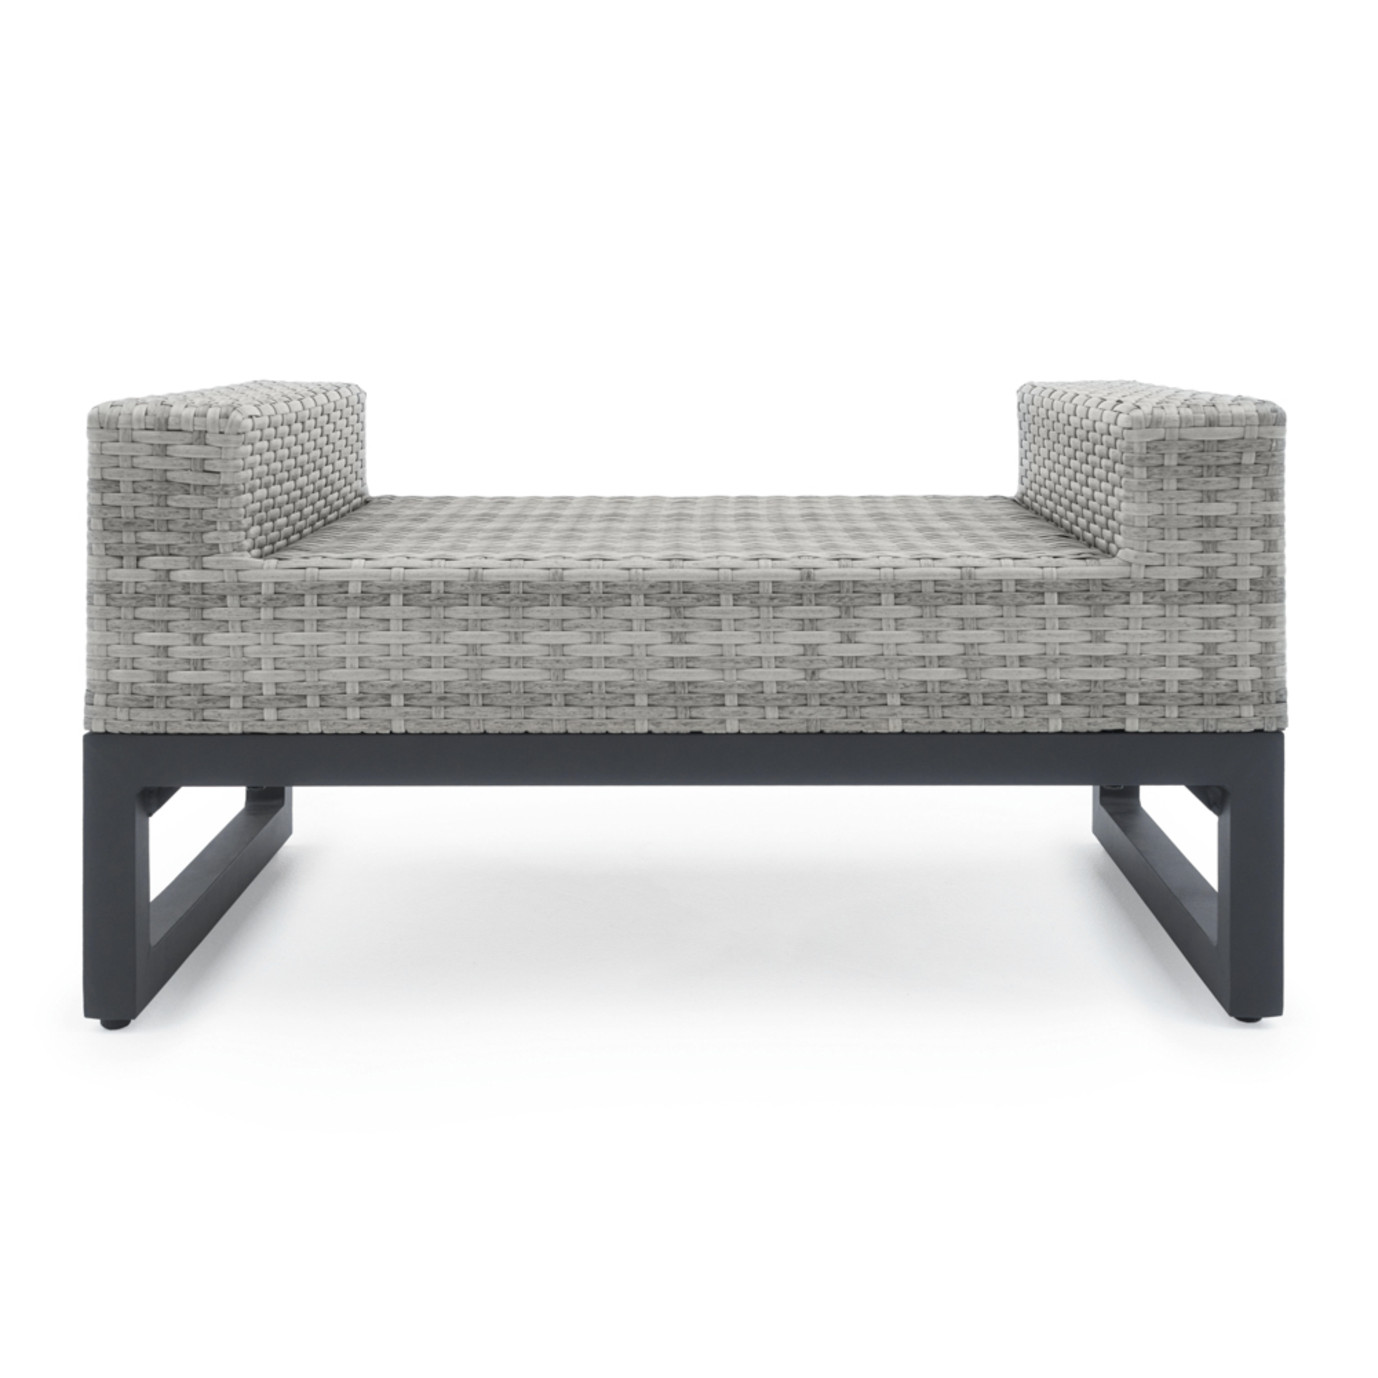 Milo™ Gray Ottomans - Moroccan Cream